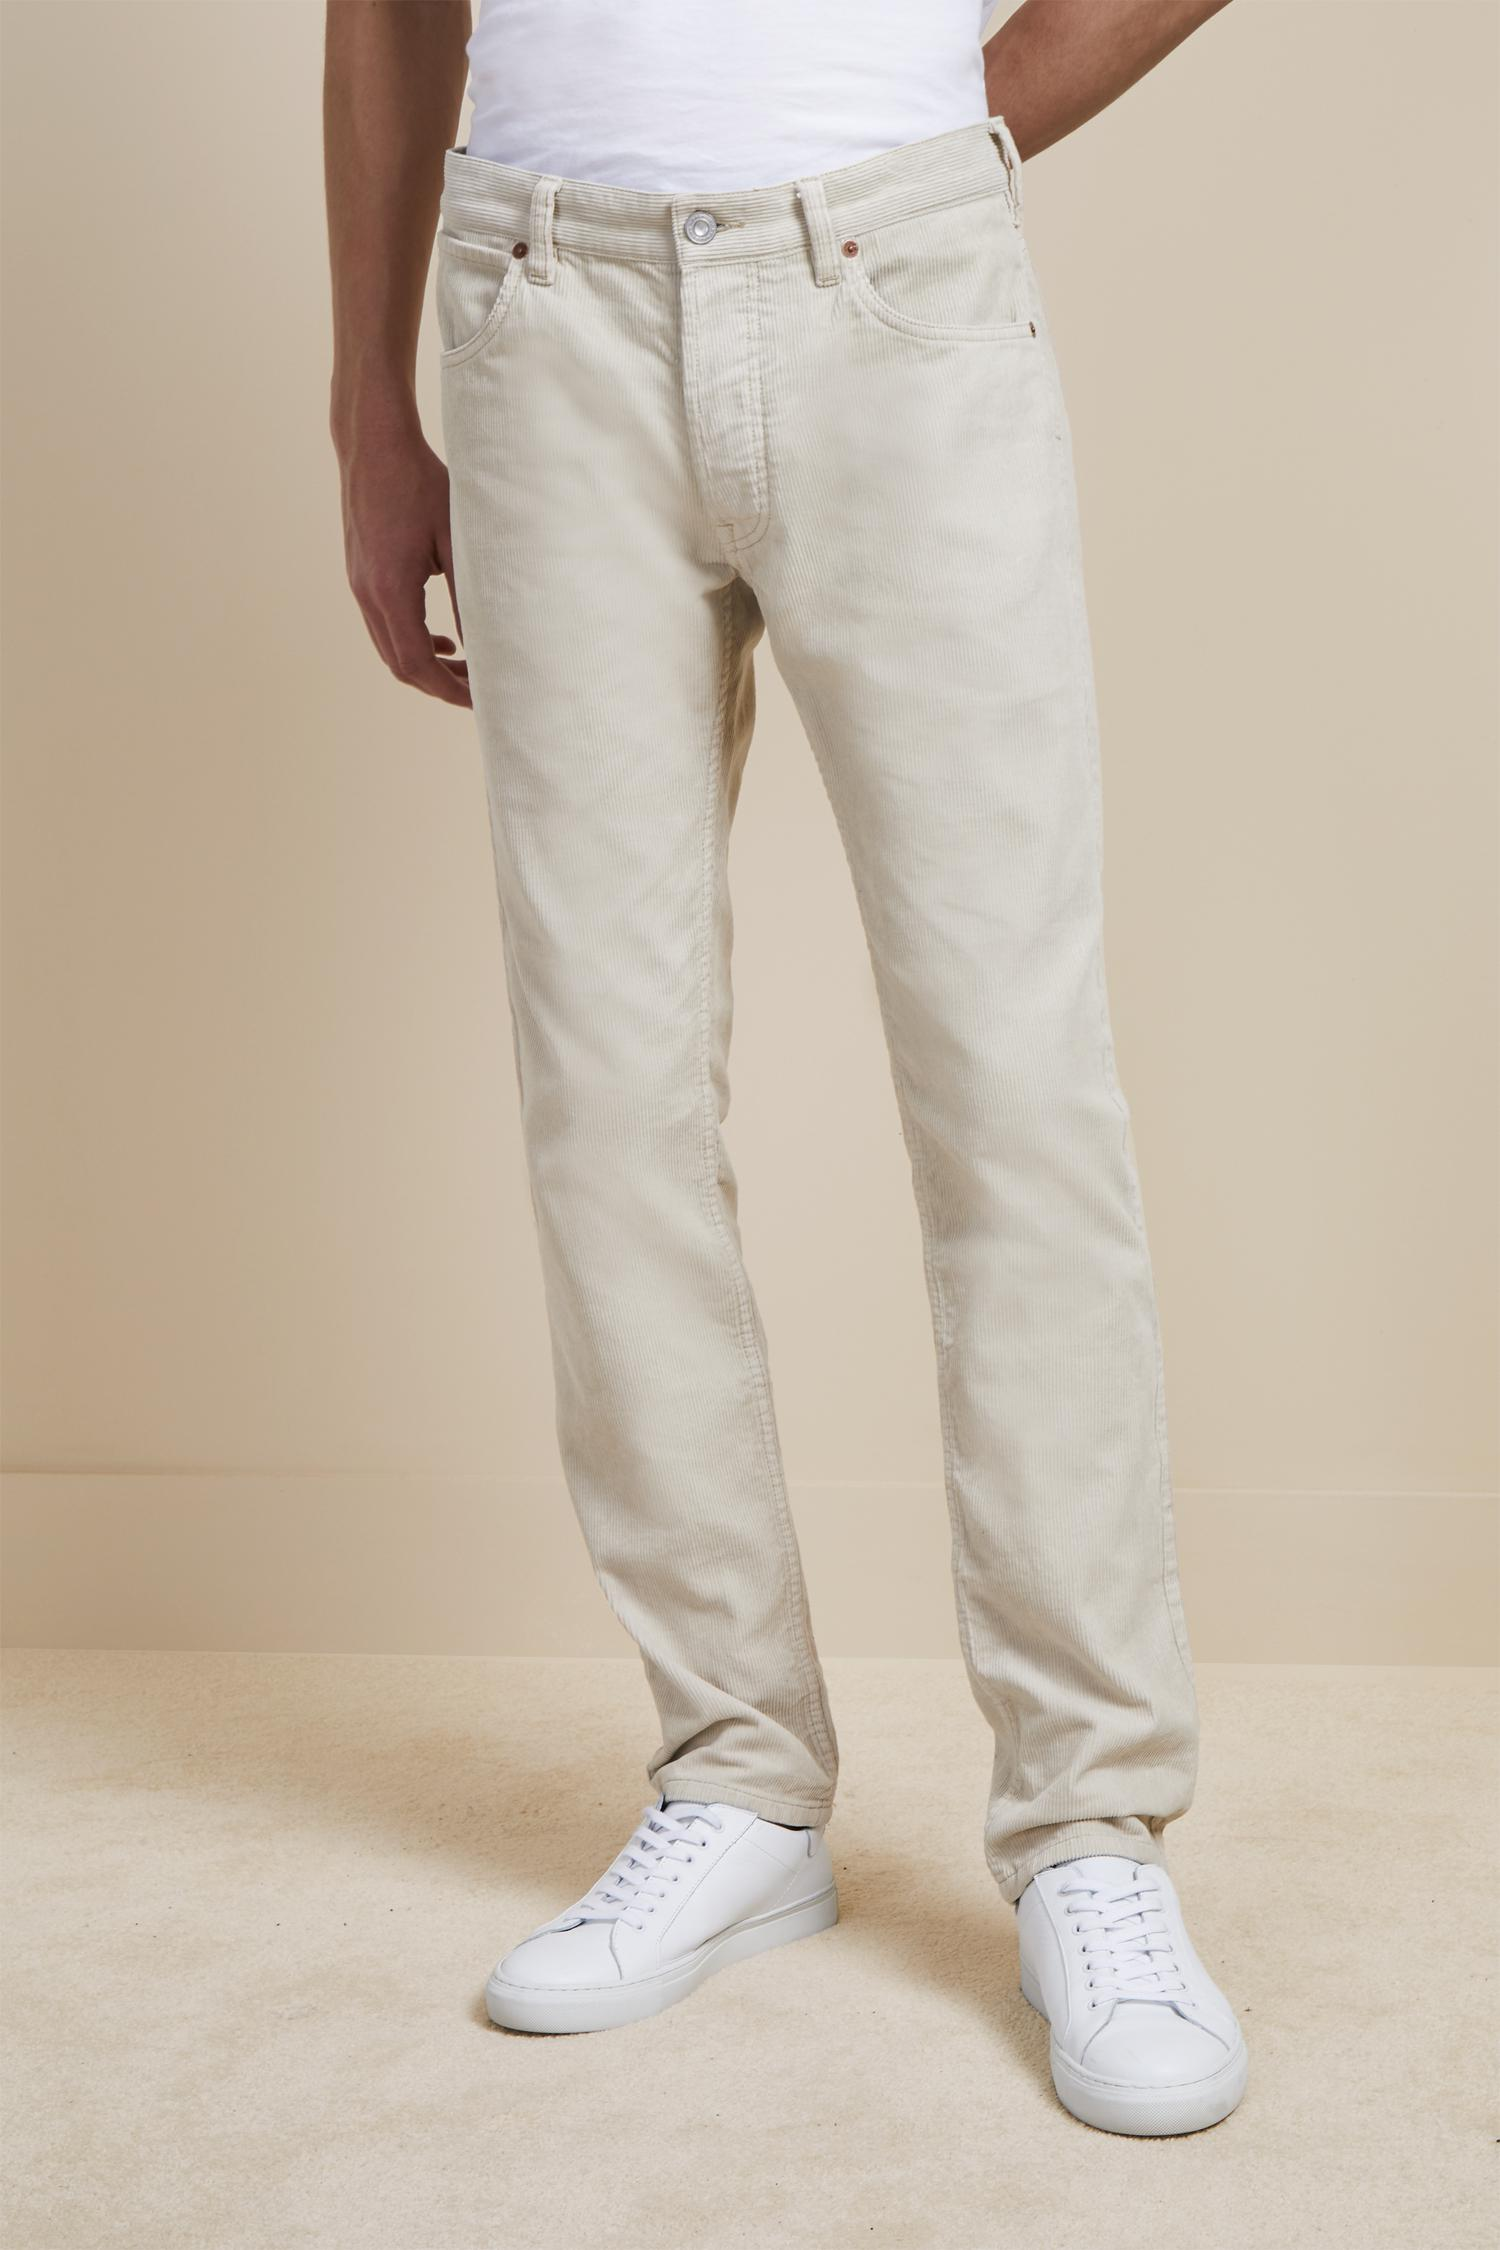 French Connection Corduroy Overdyed 12 Wales Cord Trousers in Clay Cream (Natural) for Men